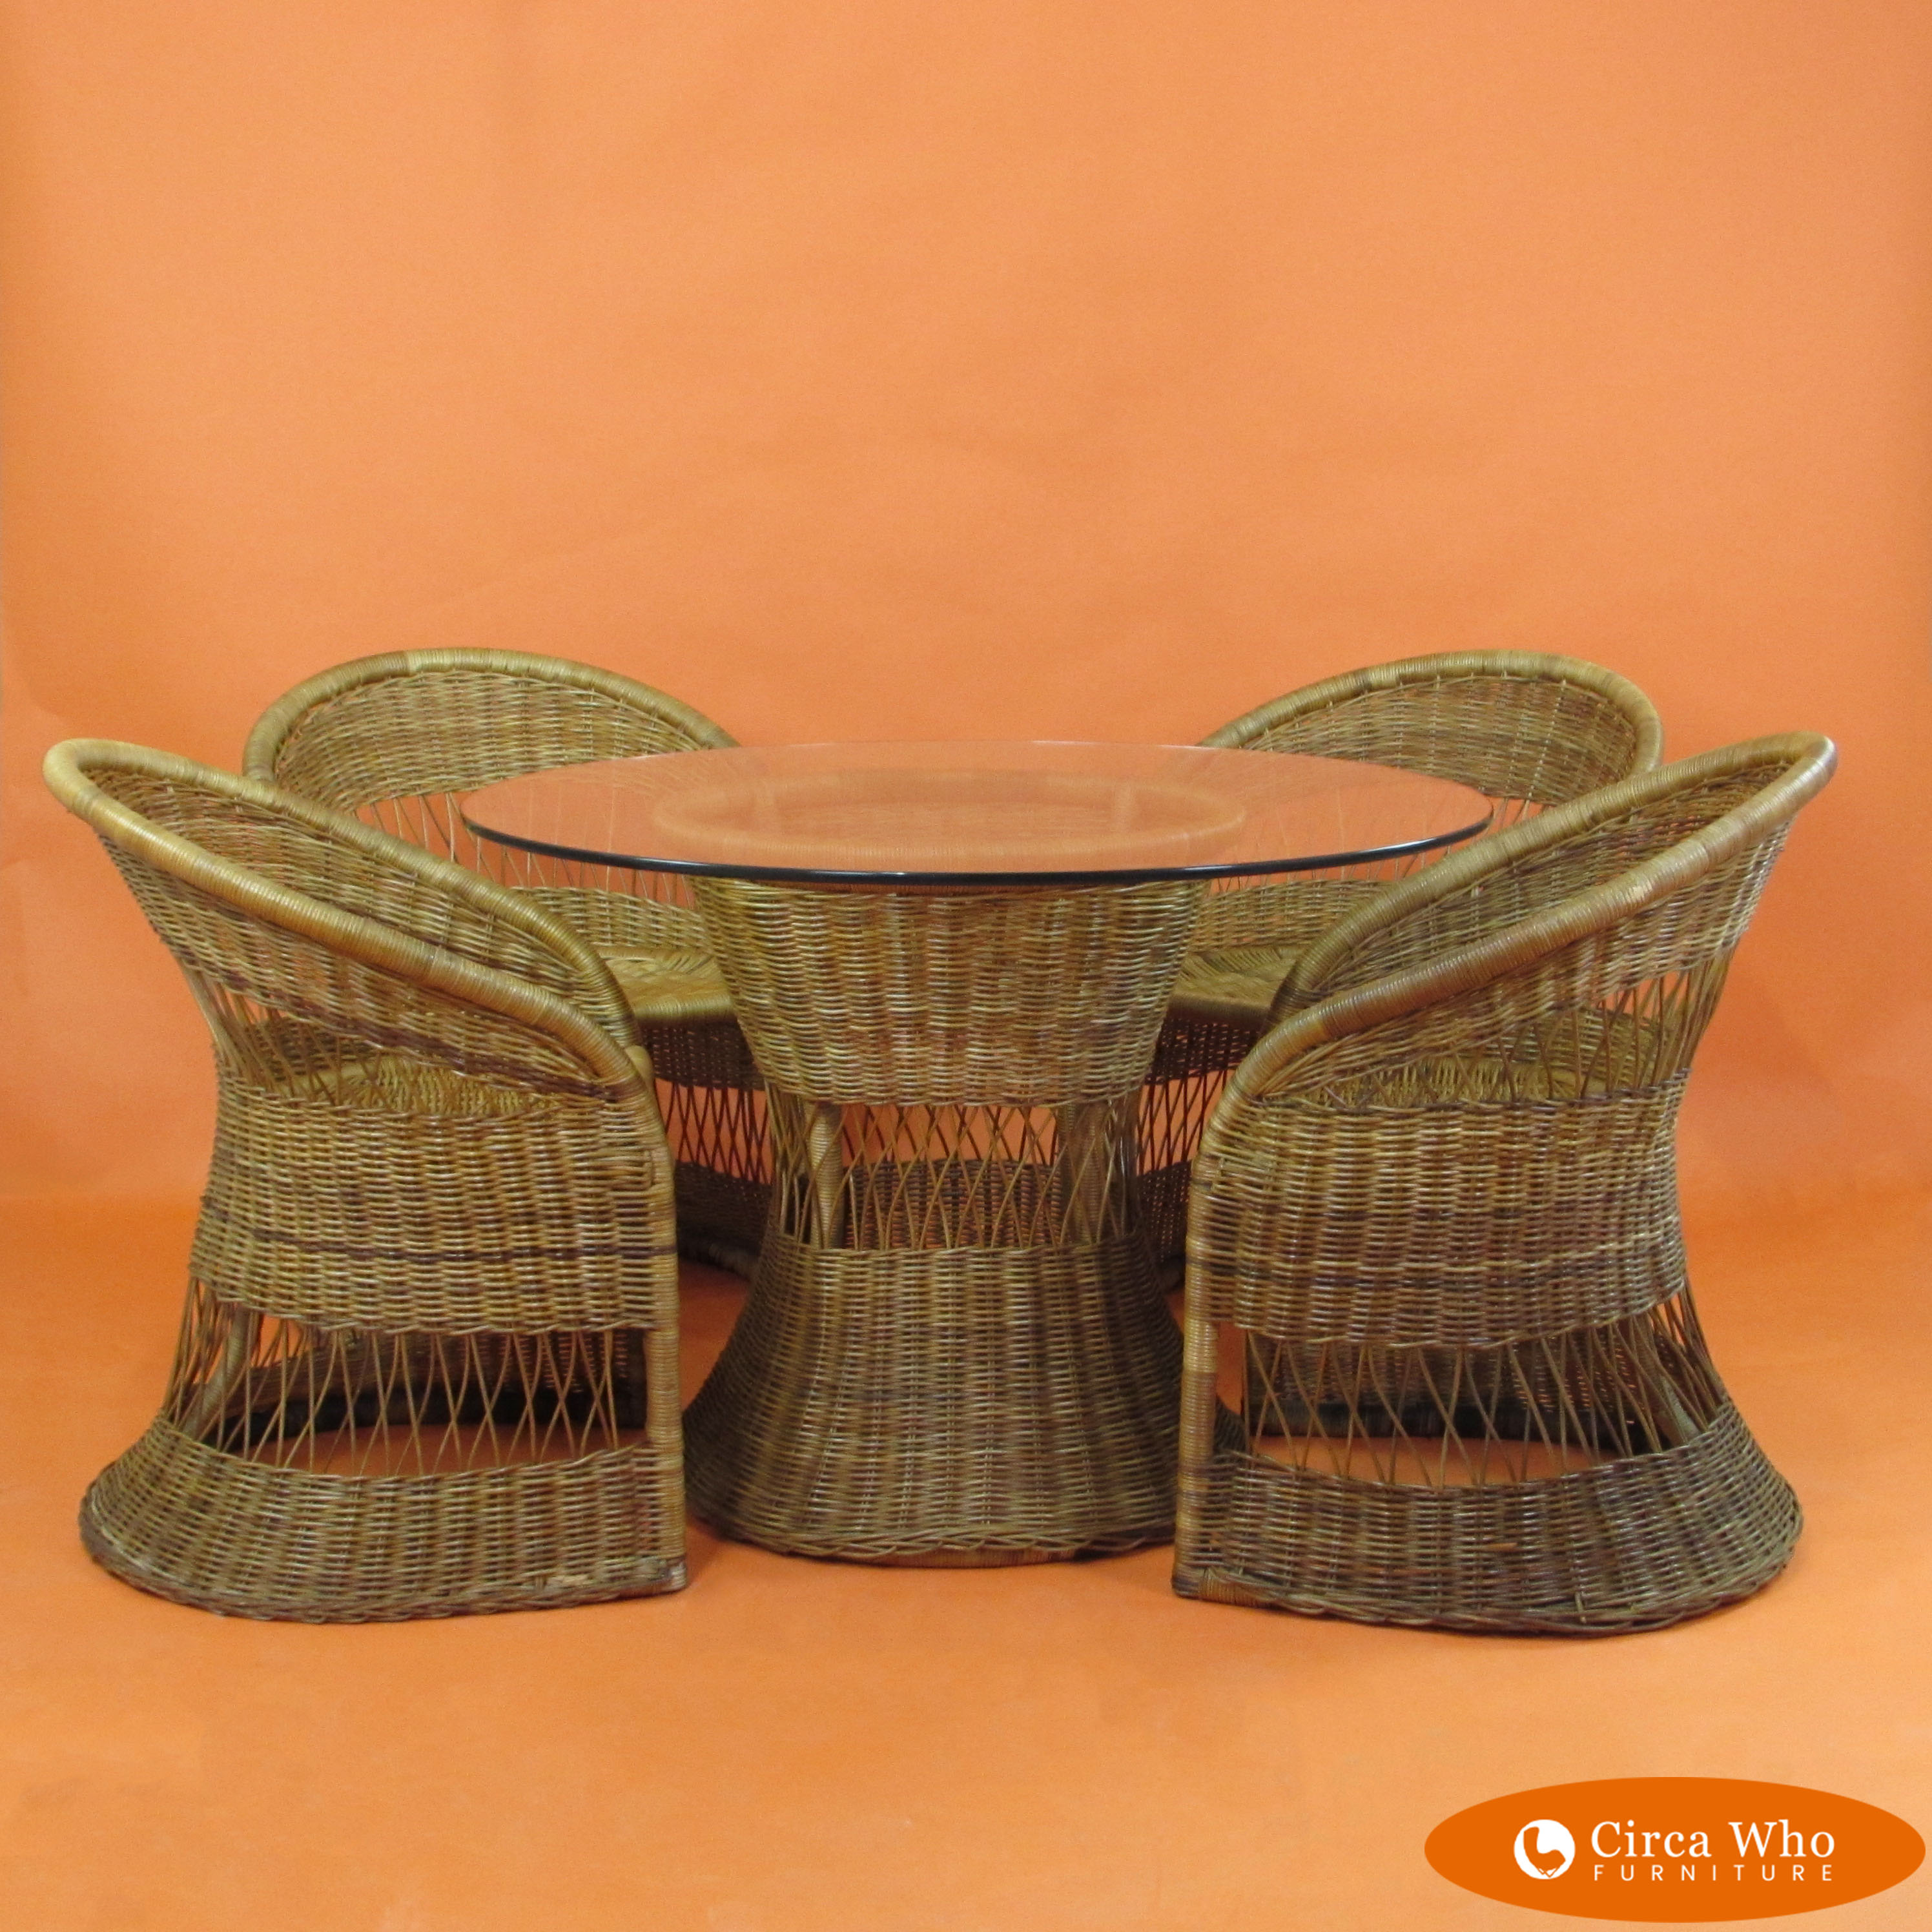 Rattan Table Woven Rattan 4 Chairs W Table